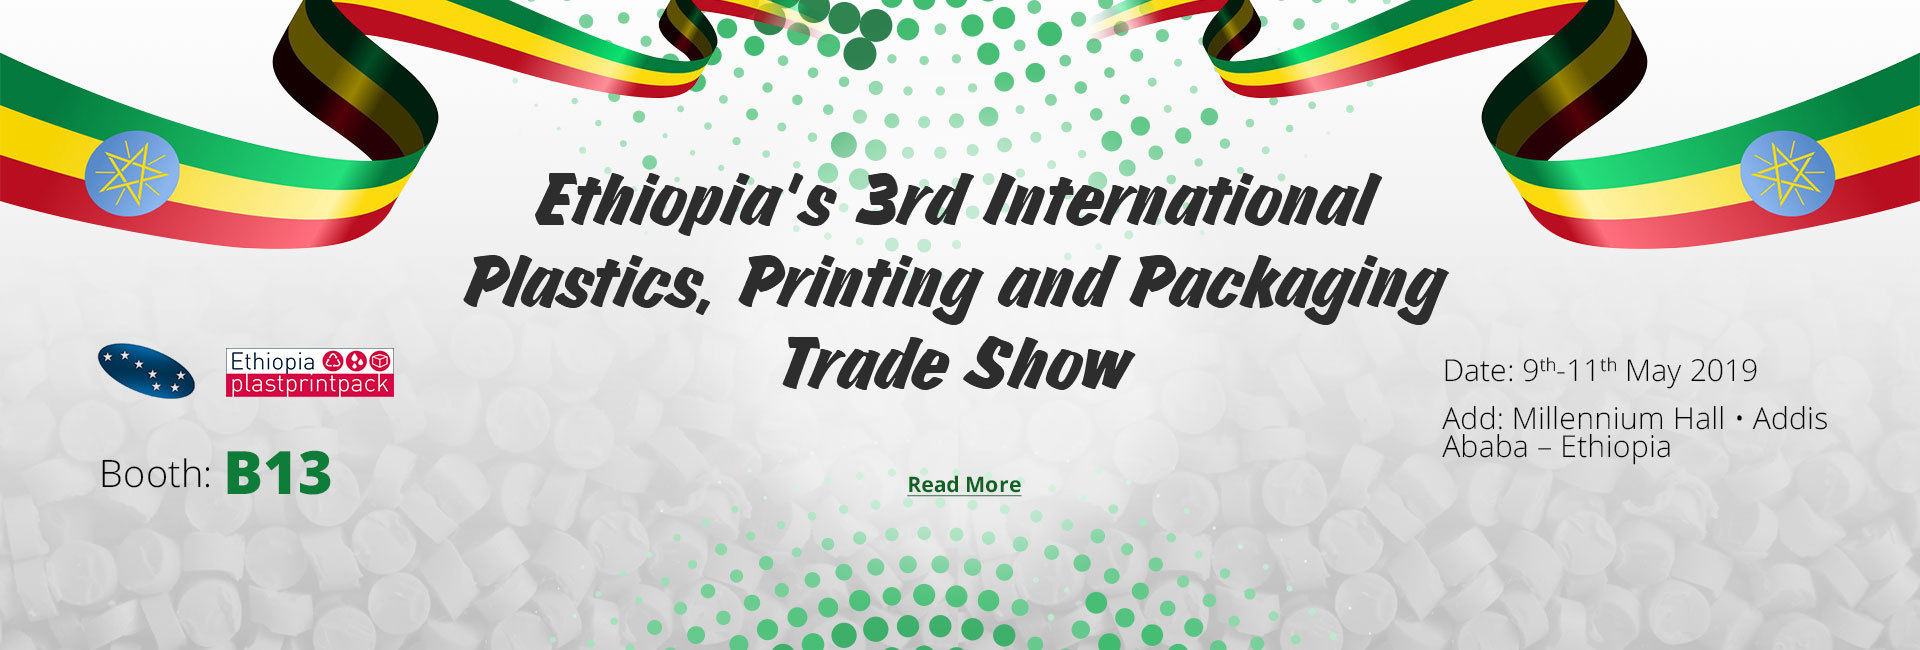 Ethiopia's 3rd International Plastics, Printing and Packaging Trade Show